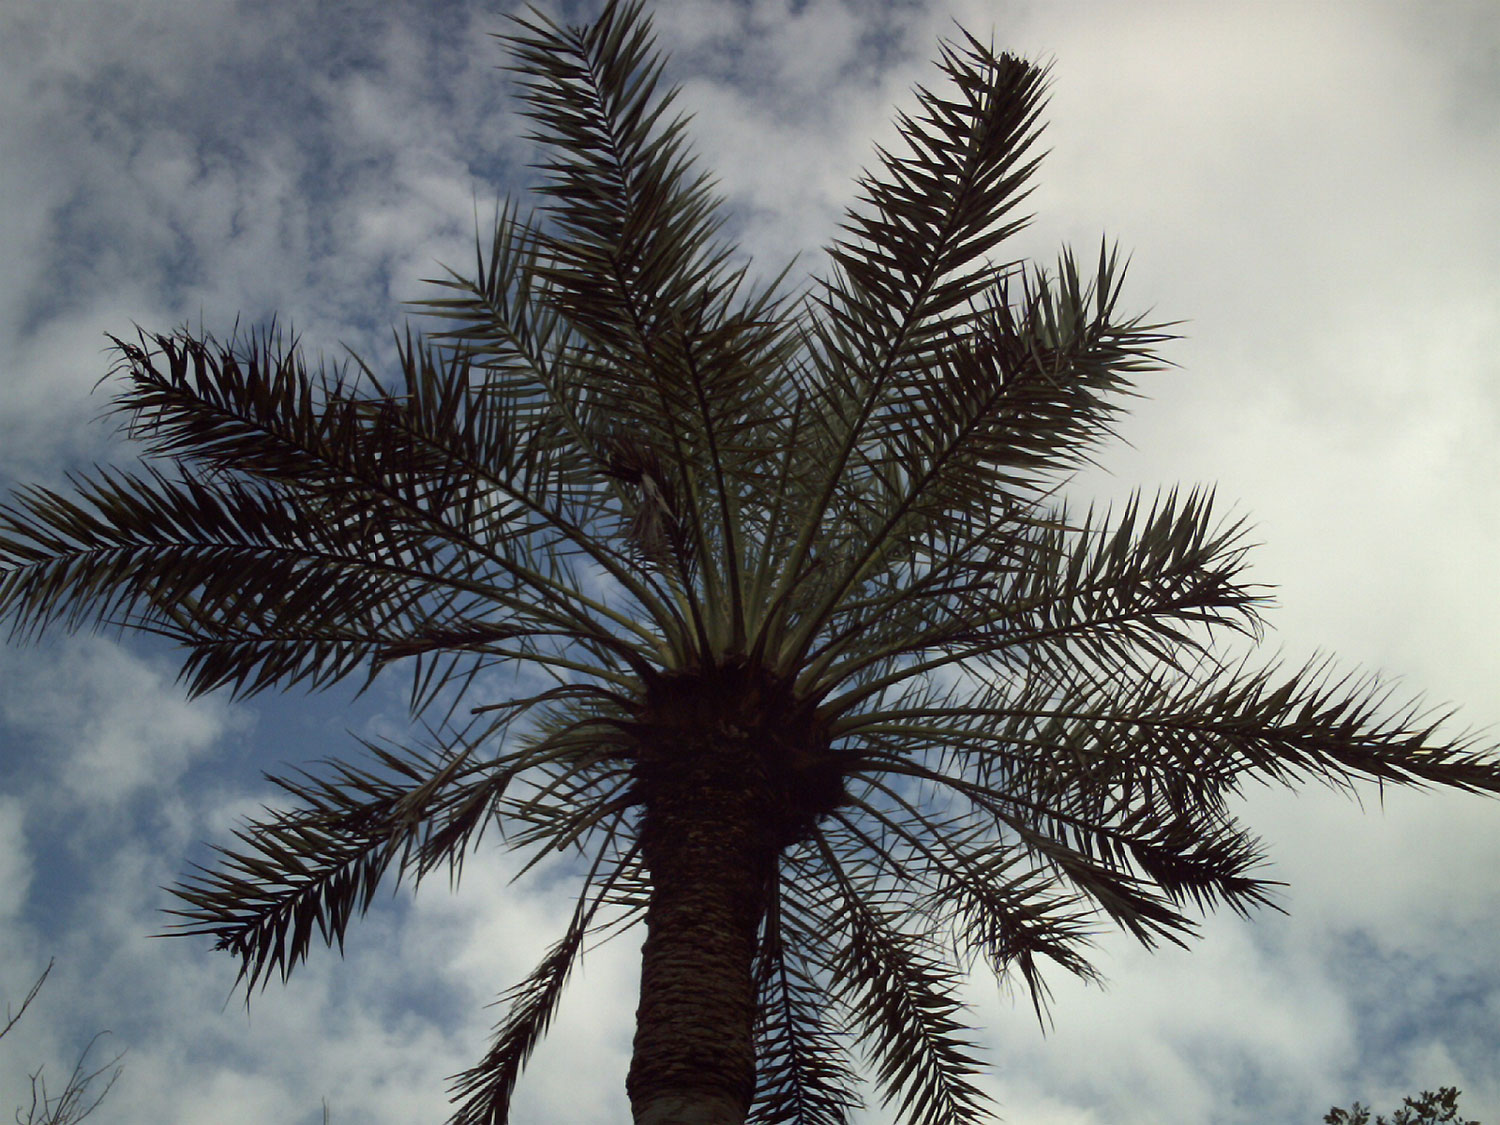 Looking up at a date palm